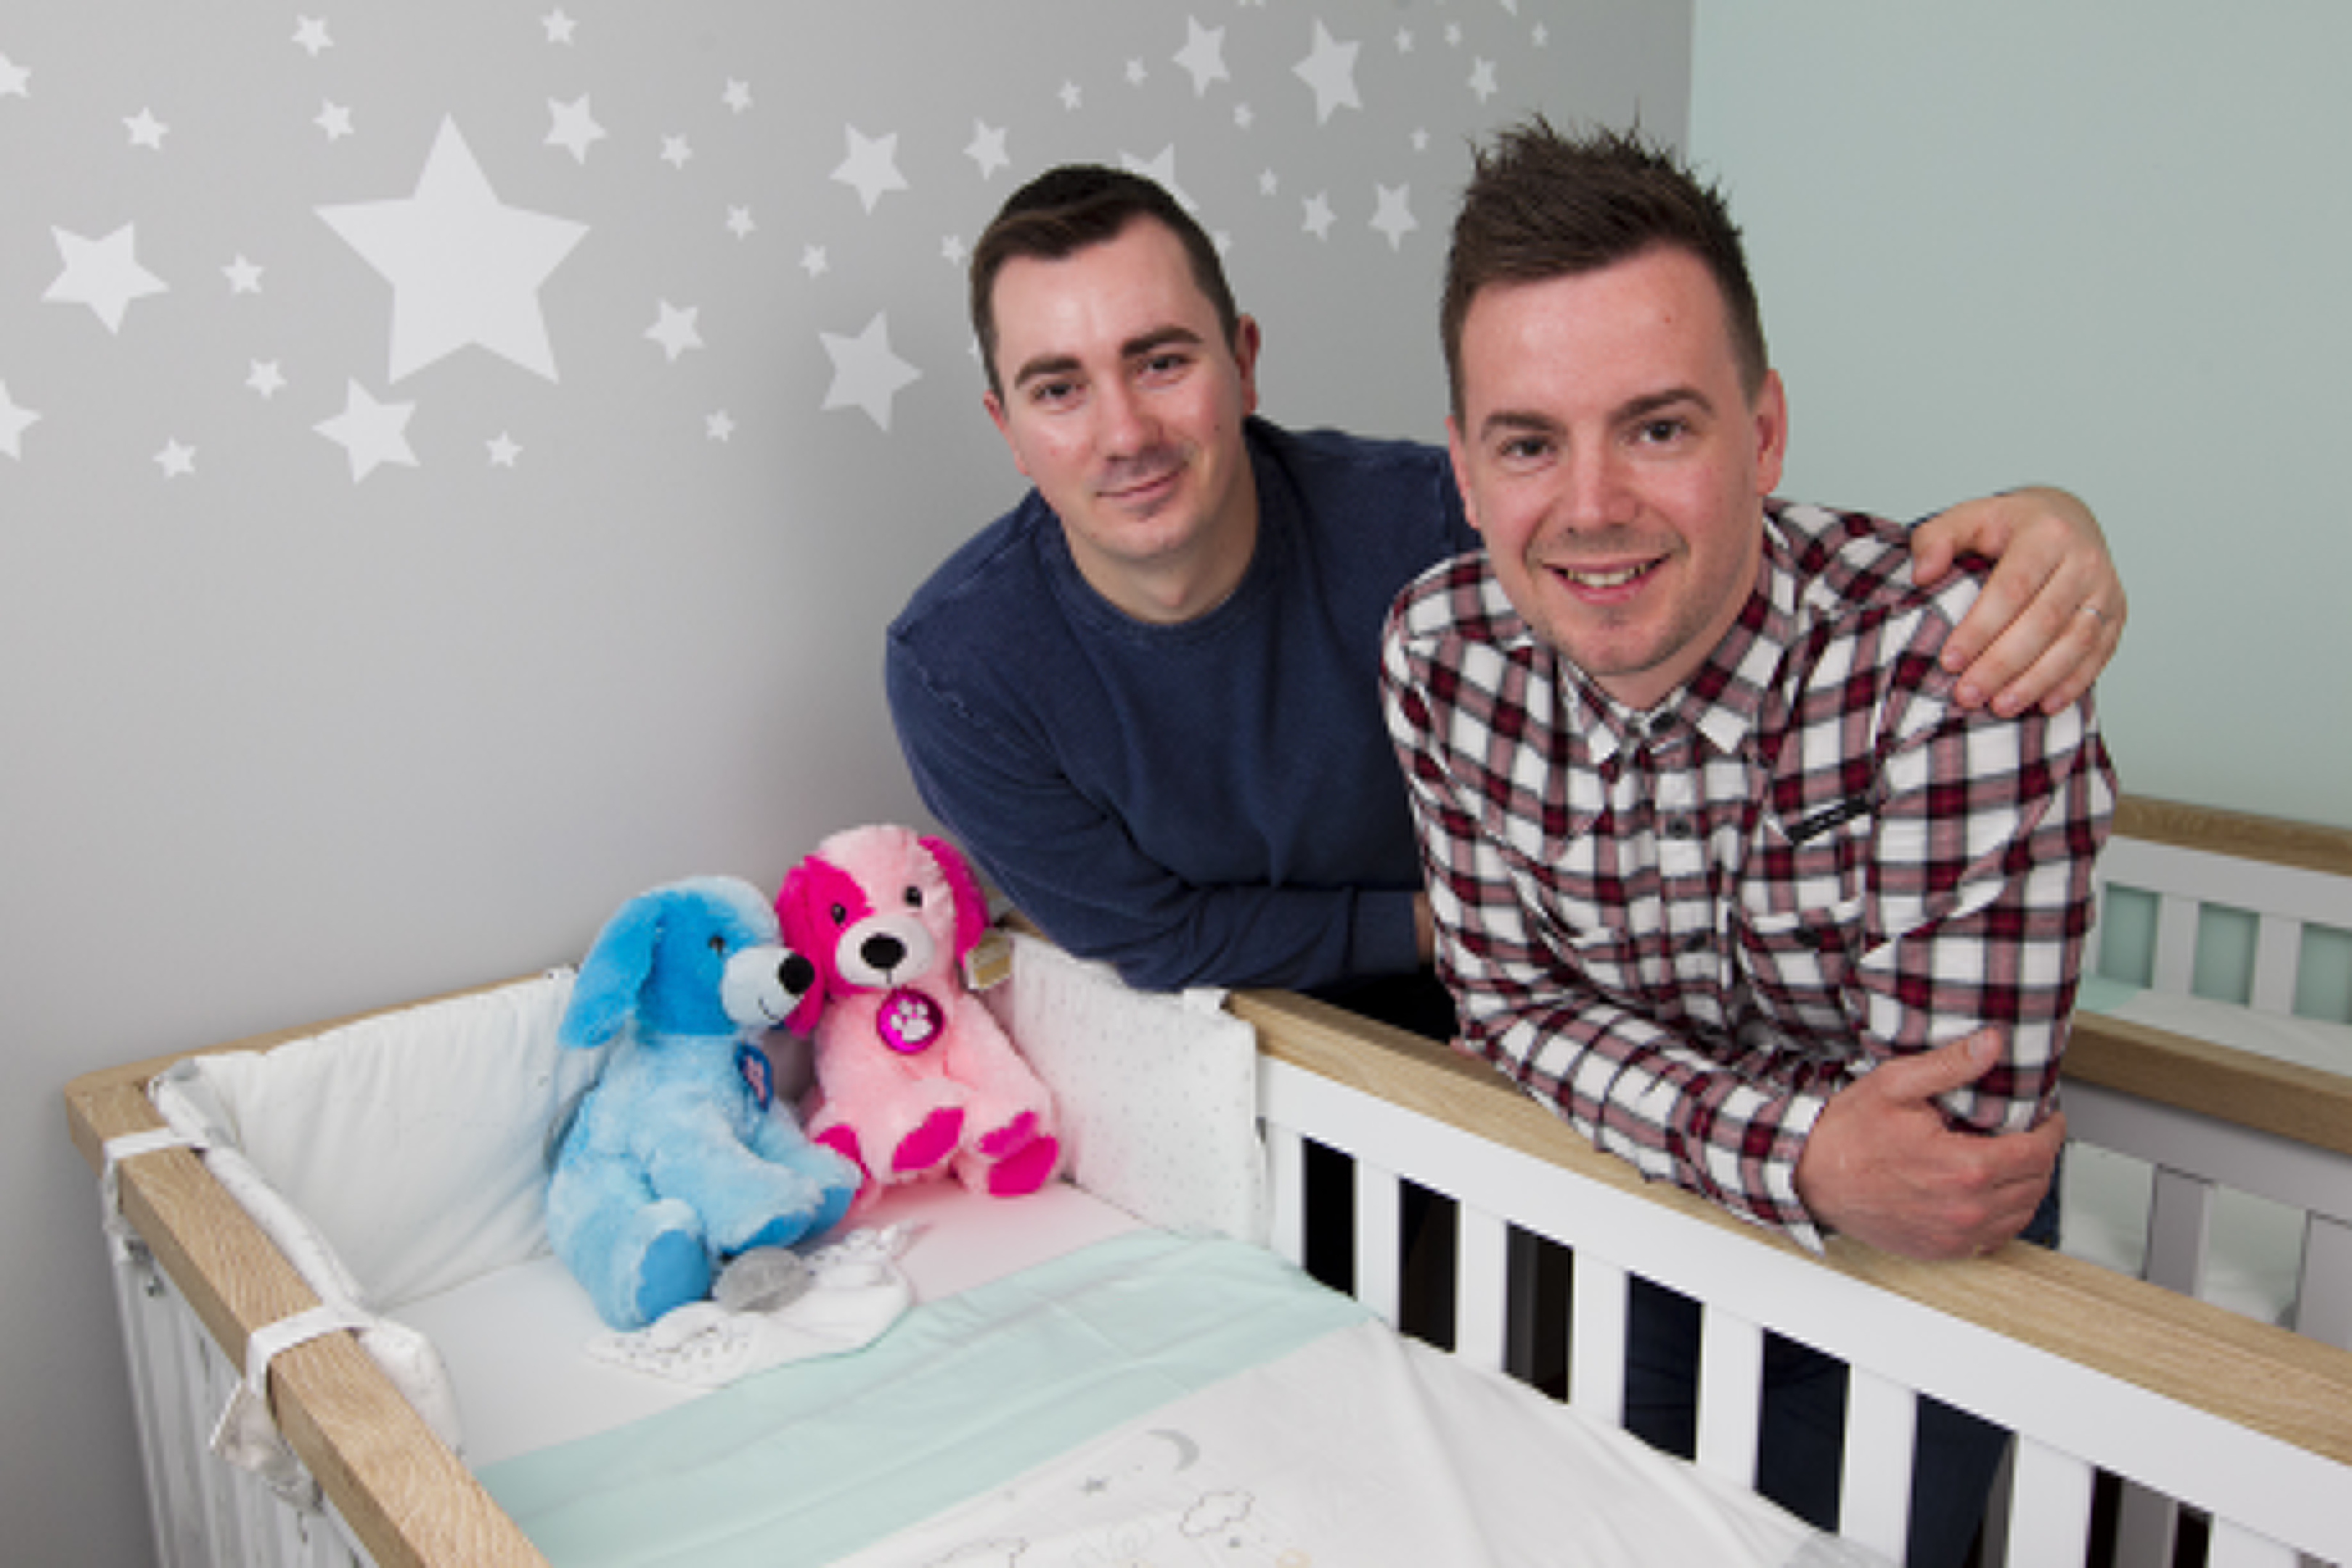 Ryan Walker (tartan shirt) and Chris Watson (blue jumper), who are to be the first gay couple in Scotland to have twin babies via a surrogate mother through fertility clinic, GCRM. (Andrew Cawley, DC Thomson)